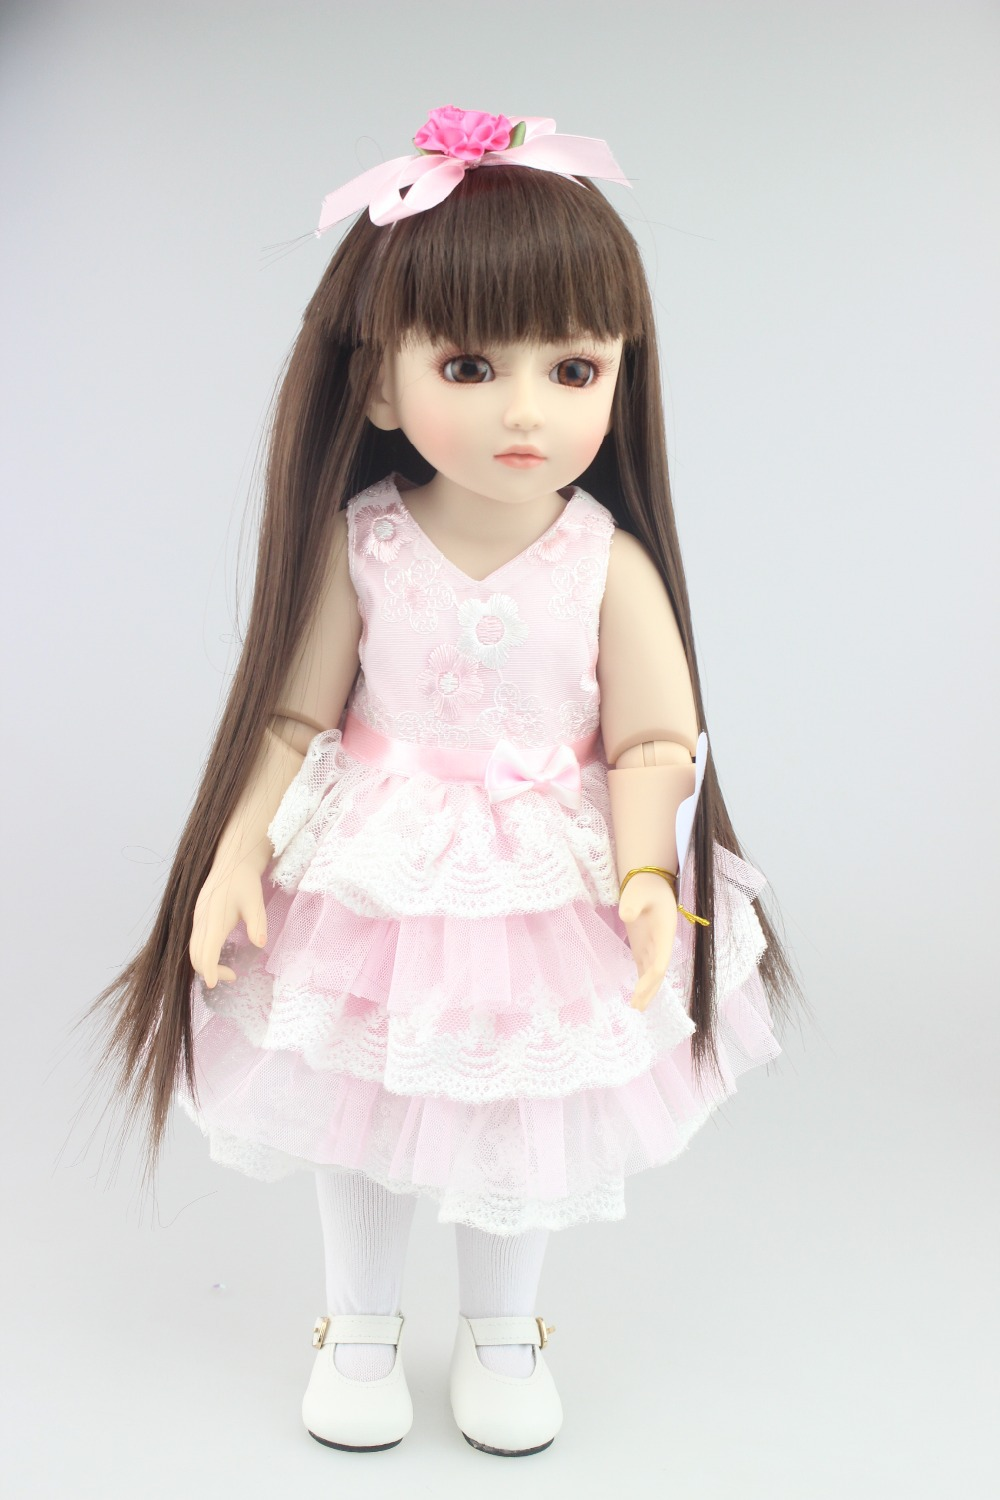 ФОТО NEW Design Beautiful SD/BJD doll 18inch top quality handmade doll poseable with joints